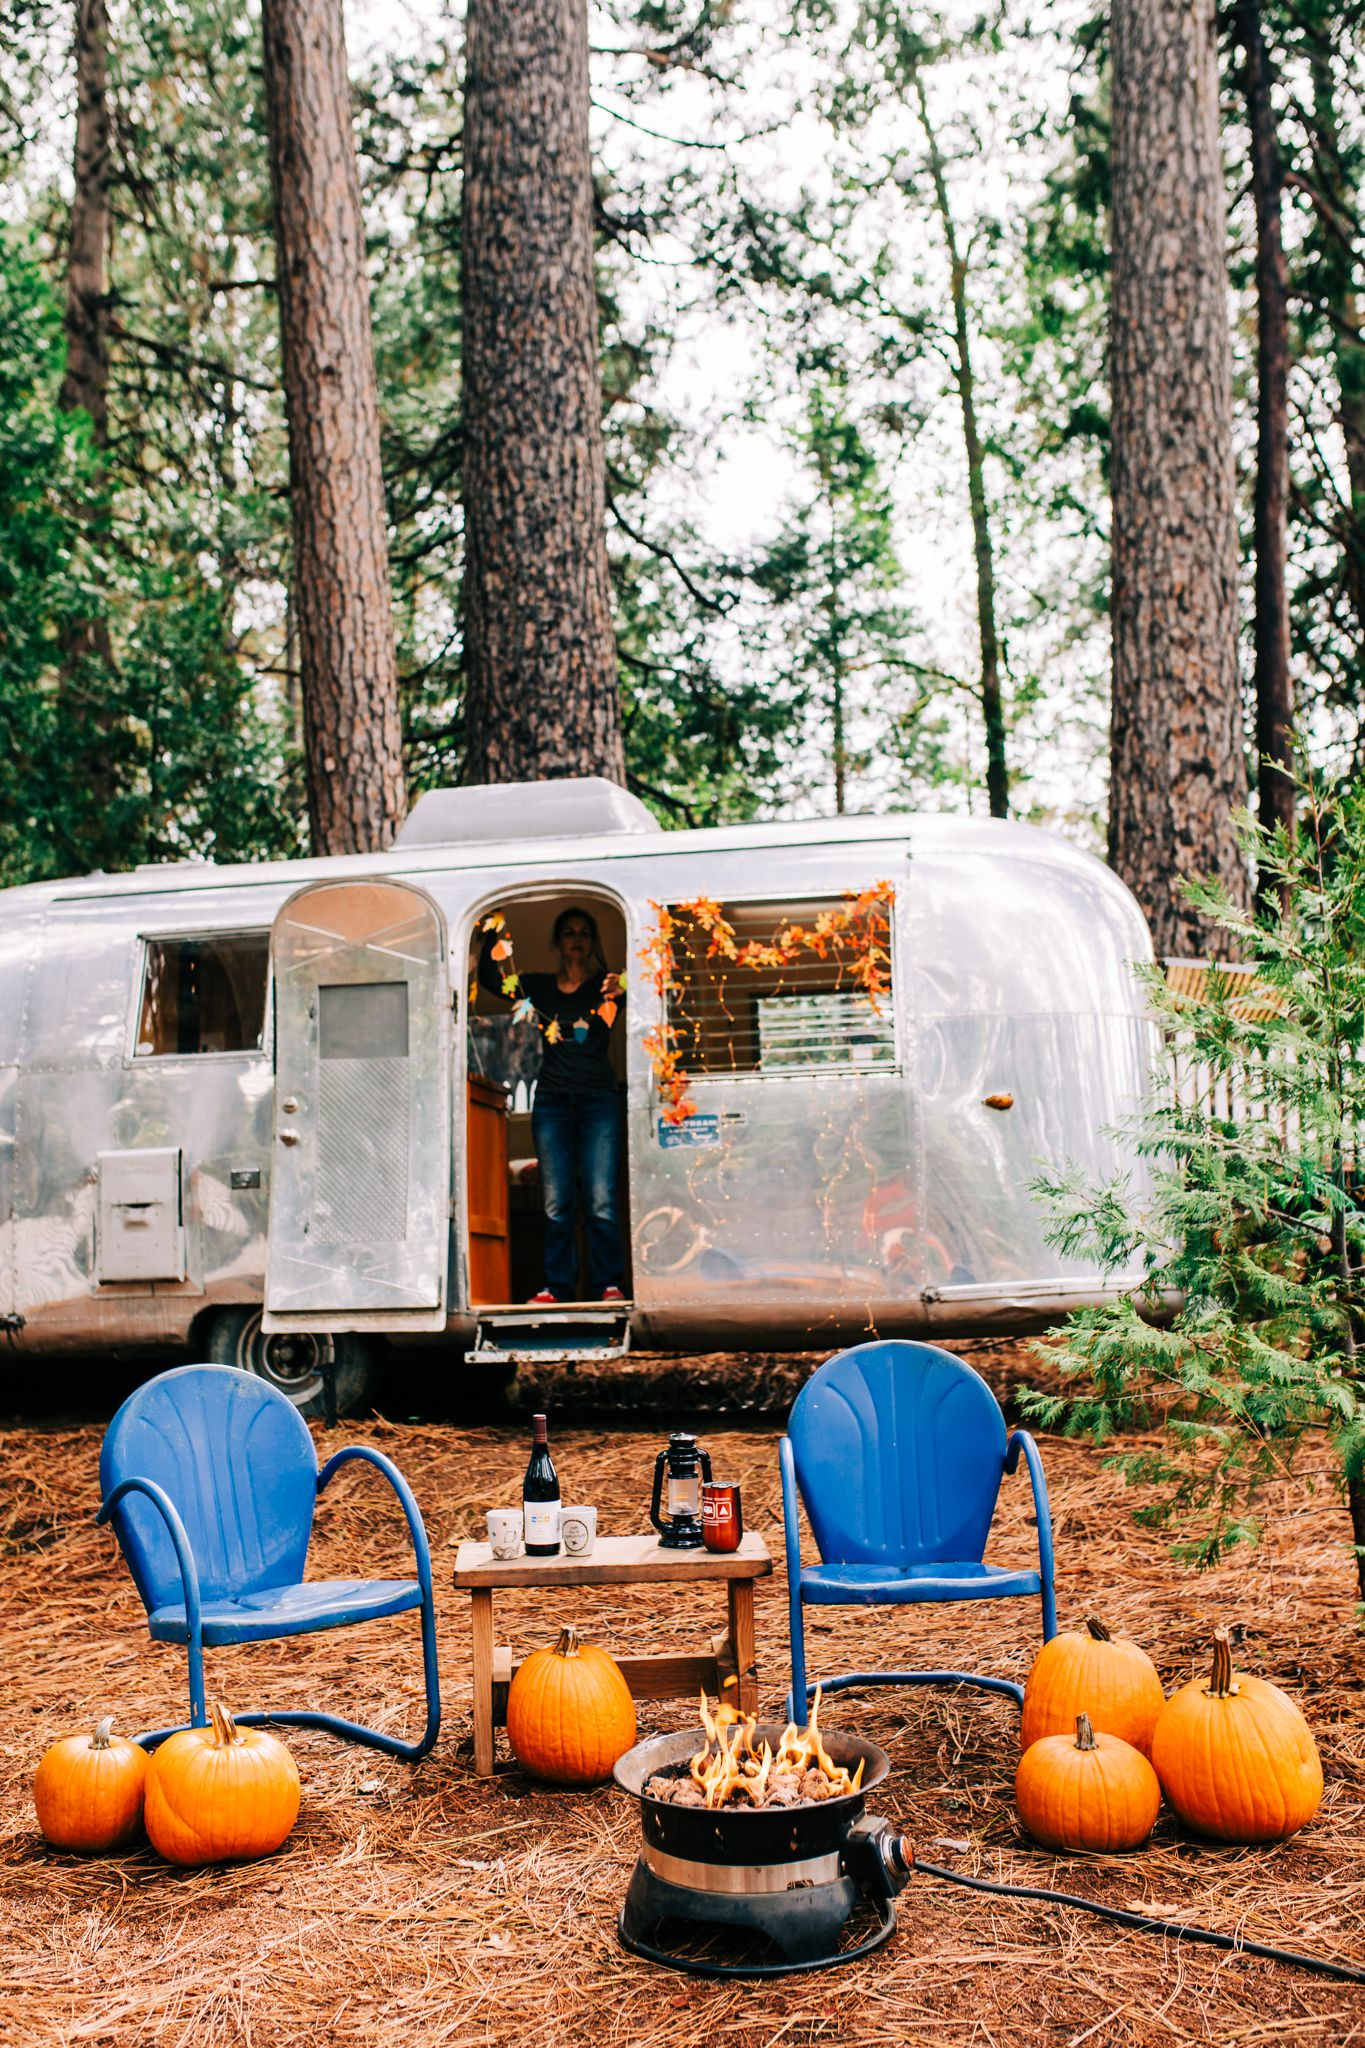 Decorate your airstream and go fall camping photo by